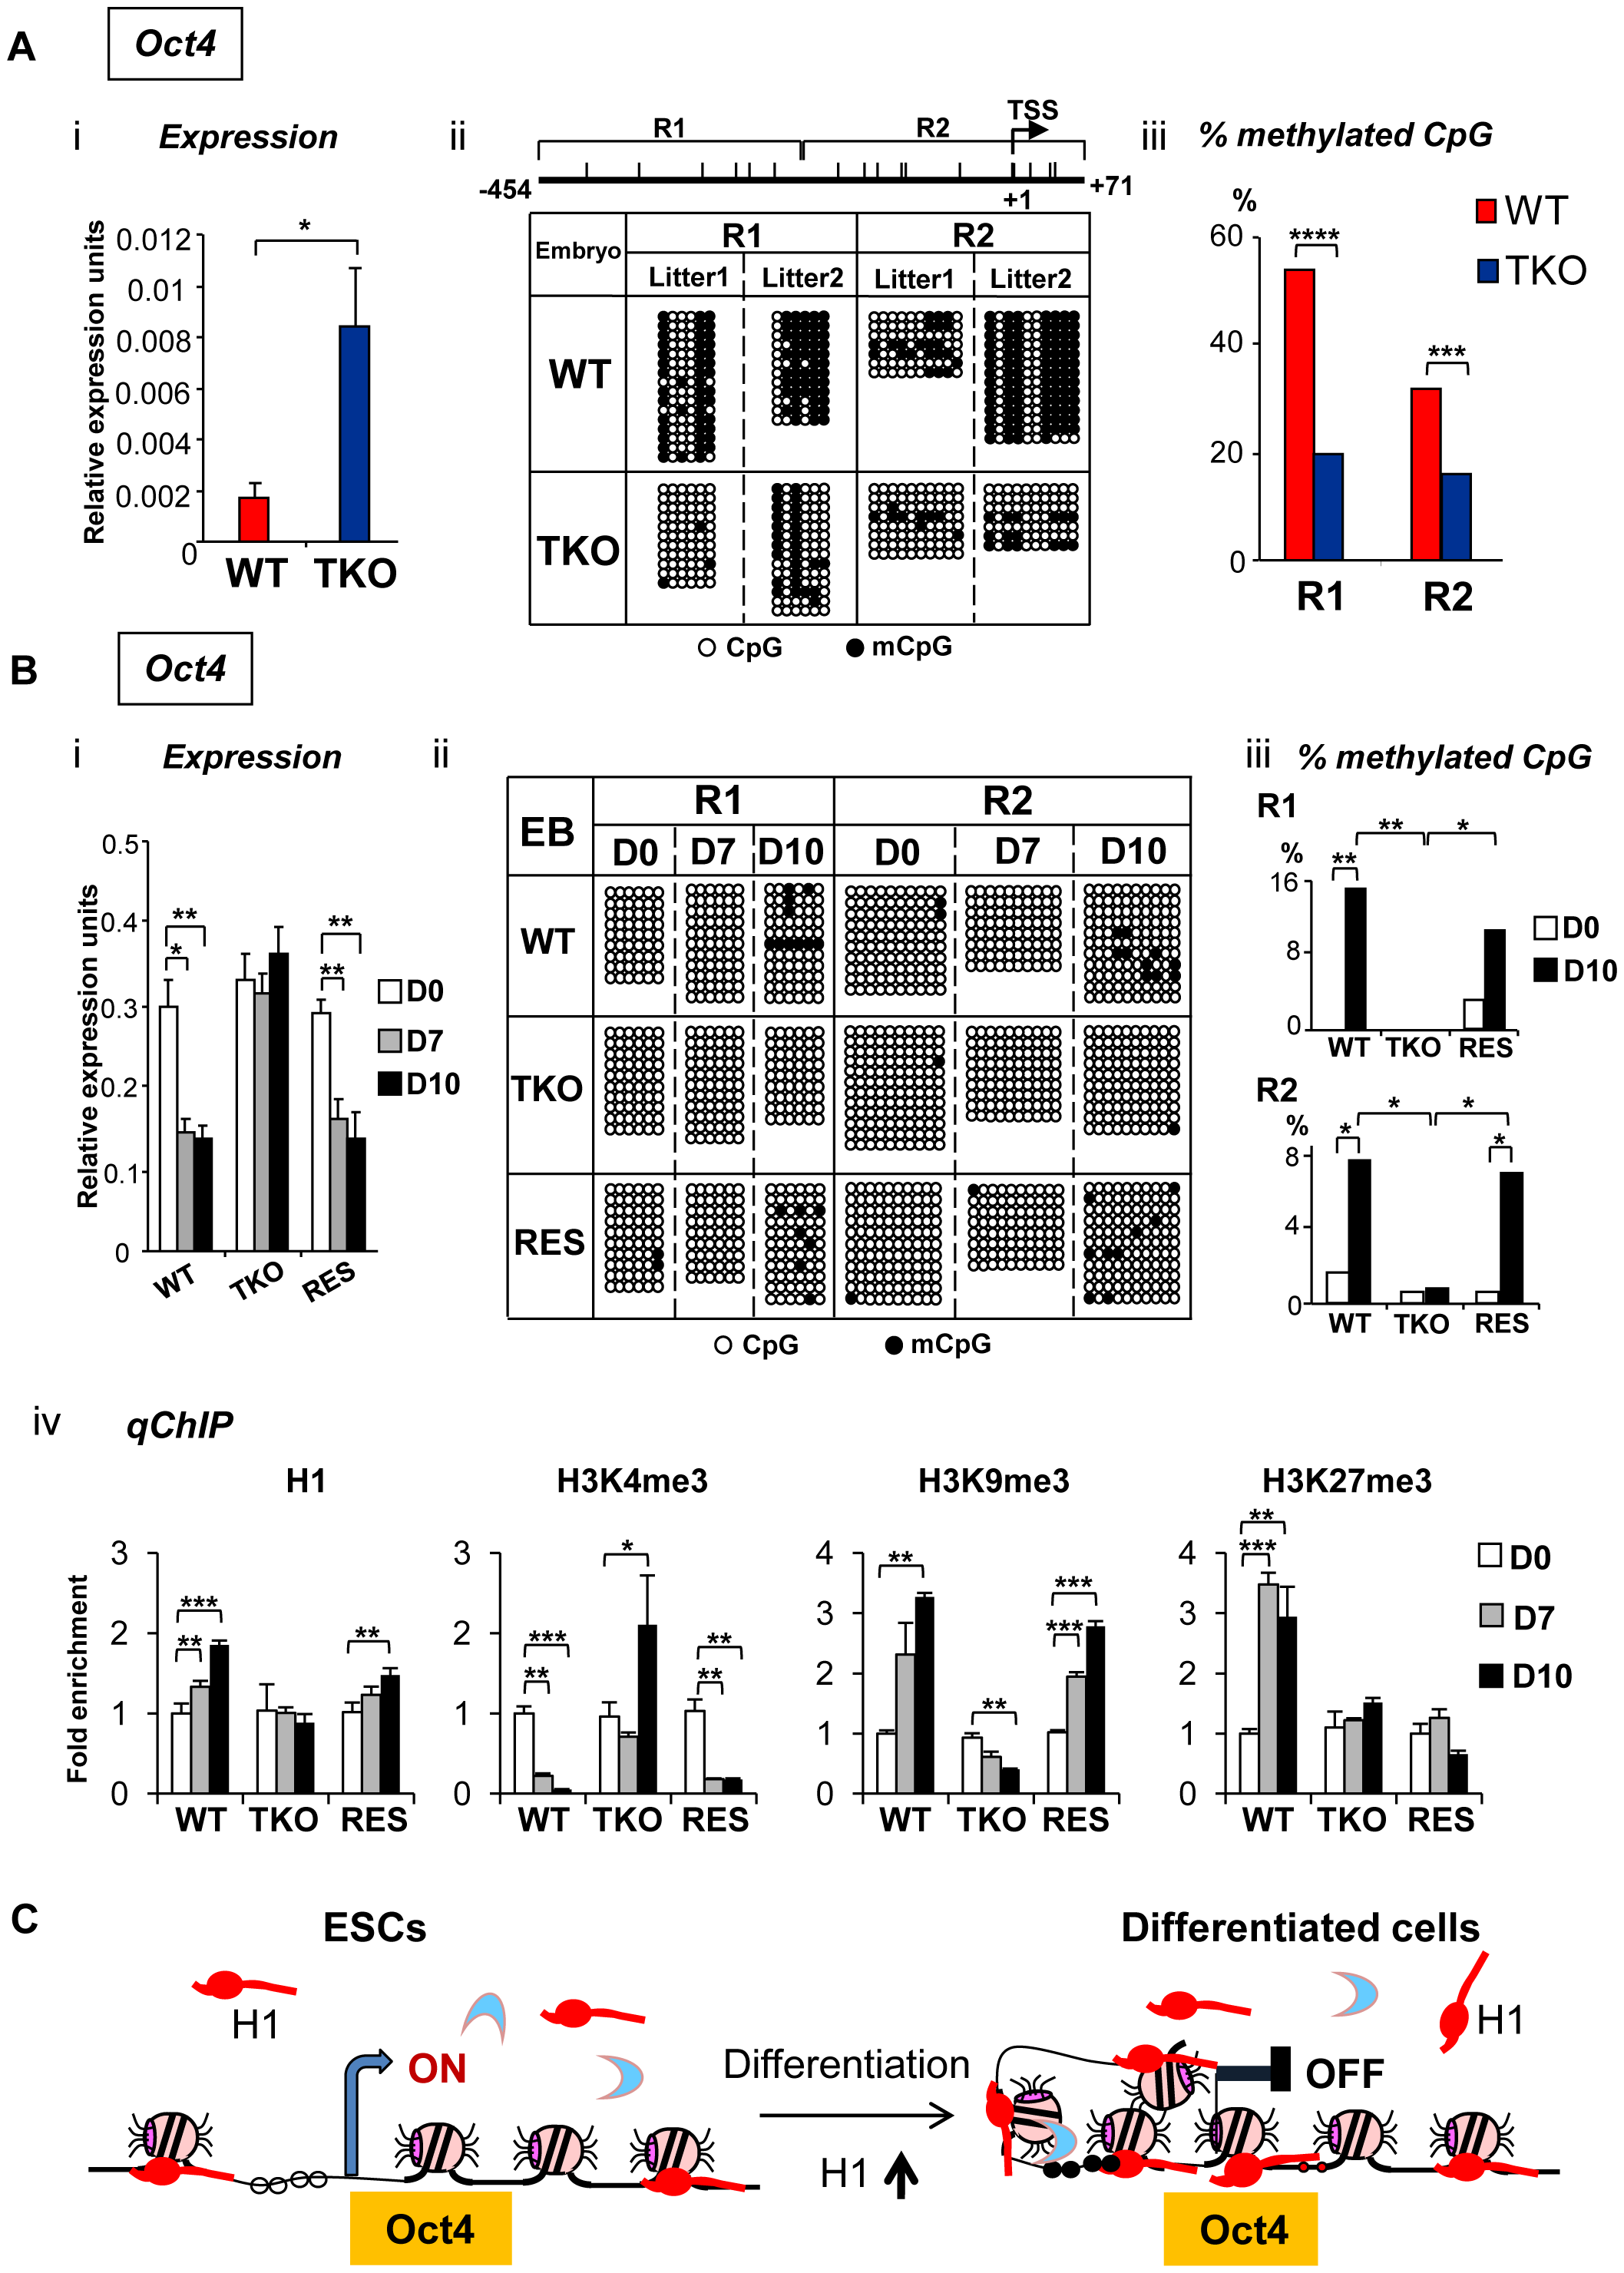 H1 is necessary for stable repression of <i>Oct4</i> pluripotency gene during embryogenesis and ESC differentiation.